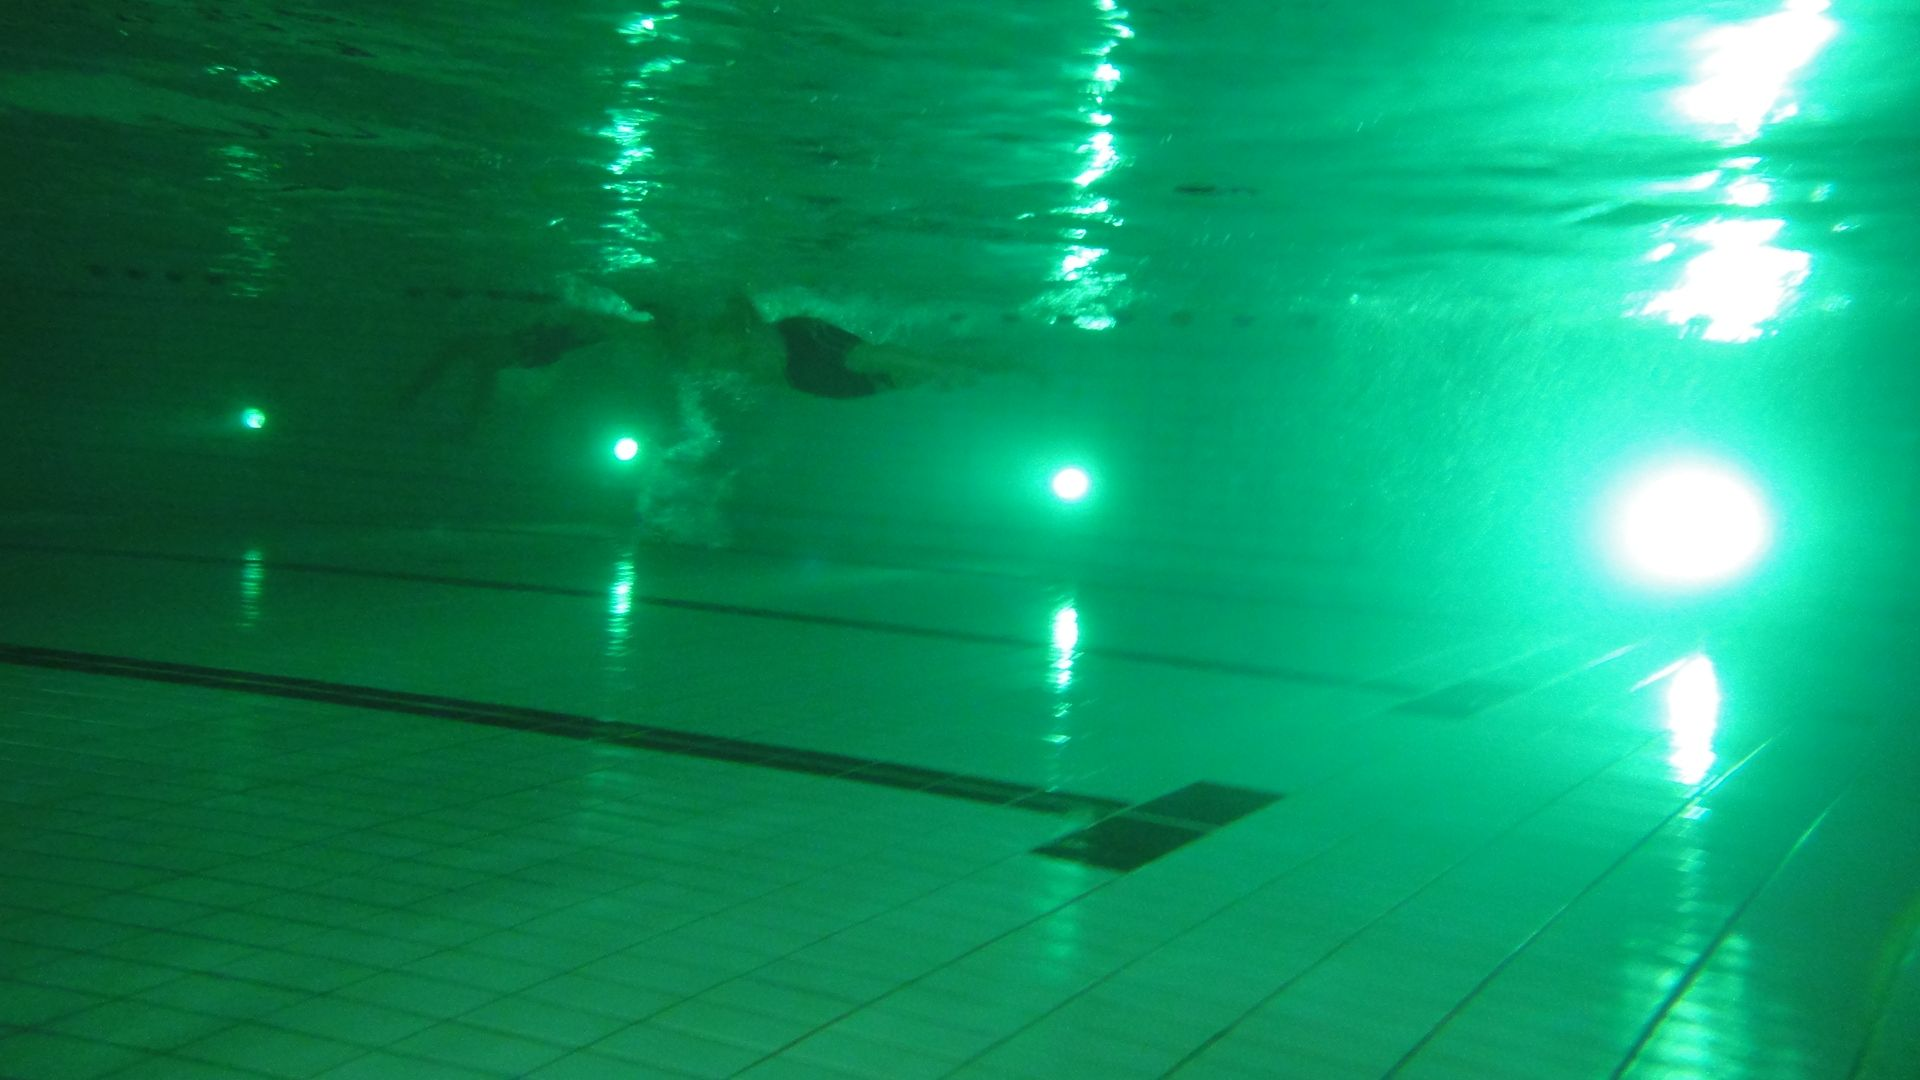 Pool Rohre Reinigen How Clean Is The Water What Is The Tyndall Effect Pool Water